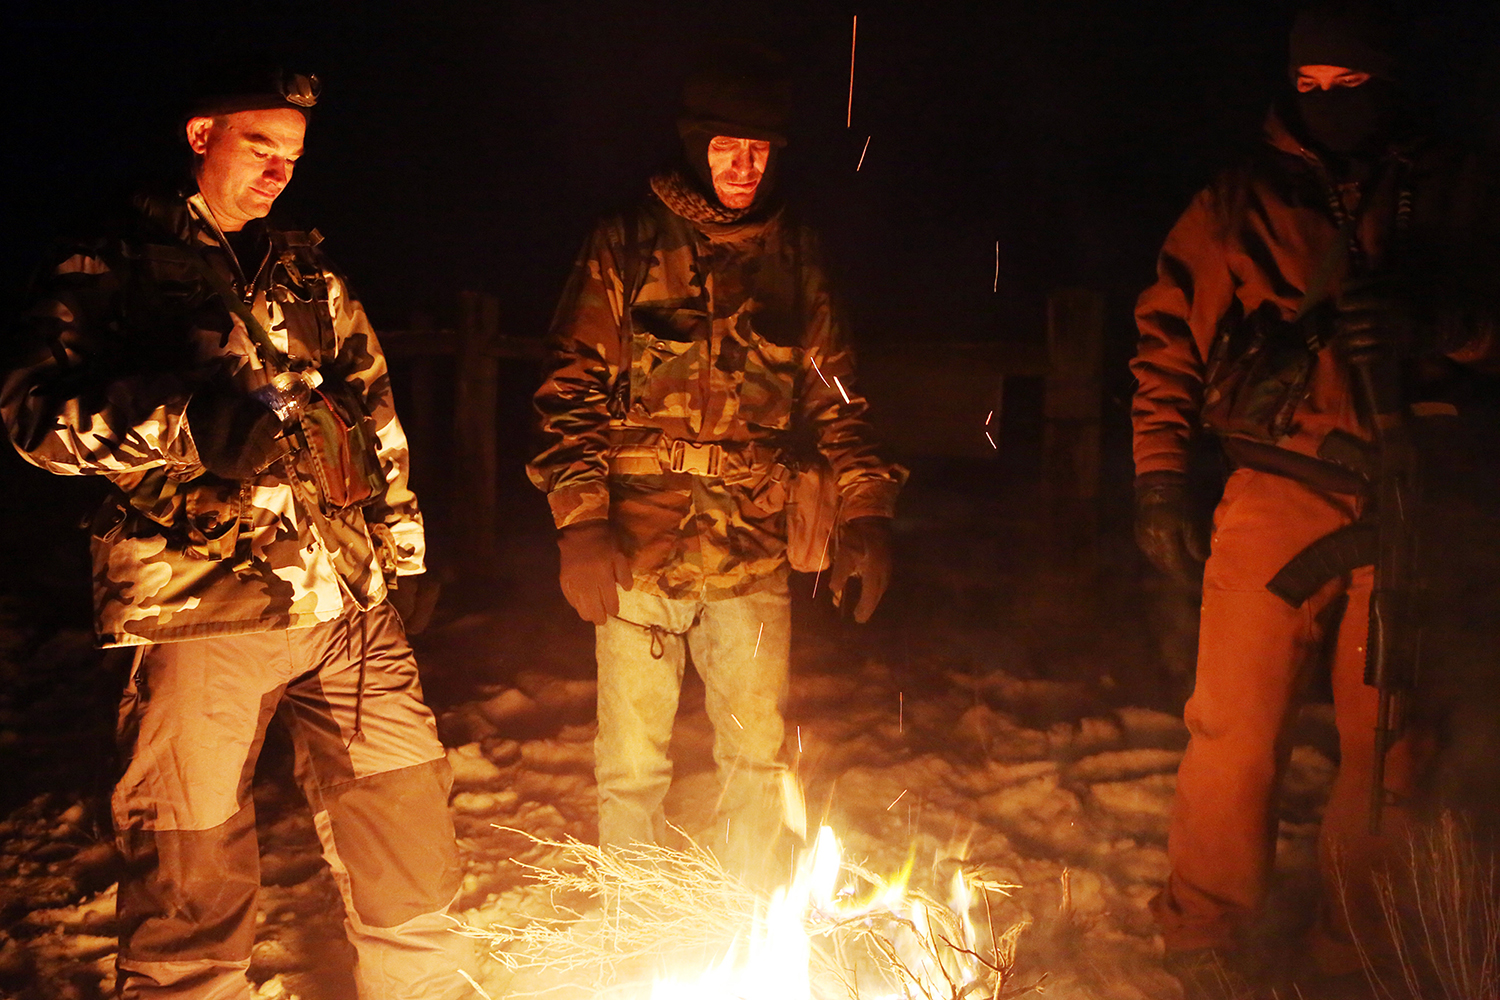 The Oregon Occupation and the Ticking Time Bomb of Rightwing Extremism